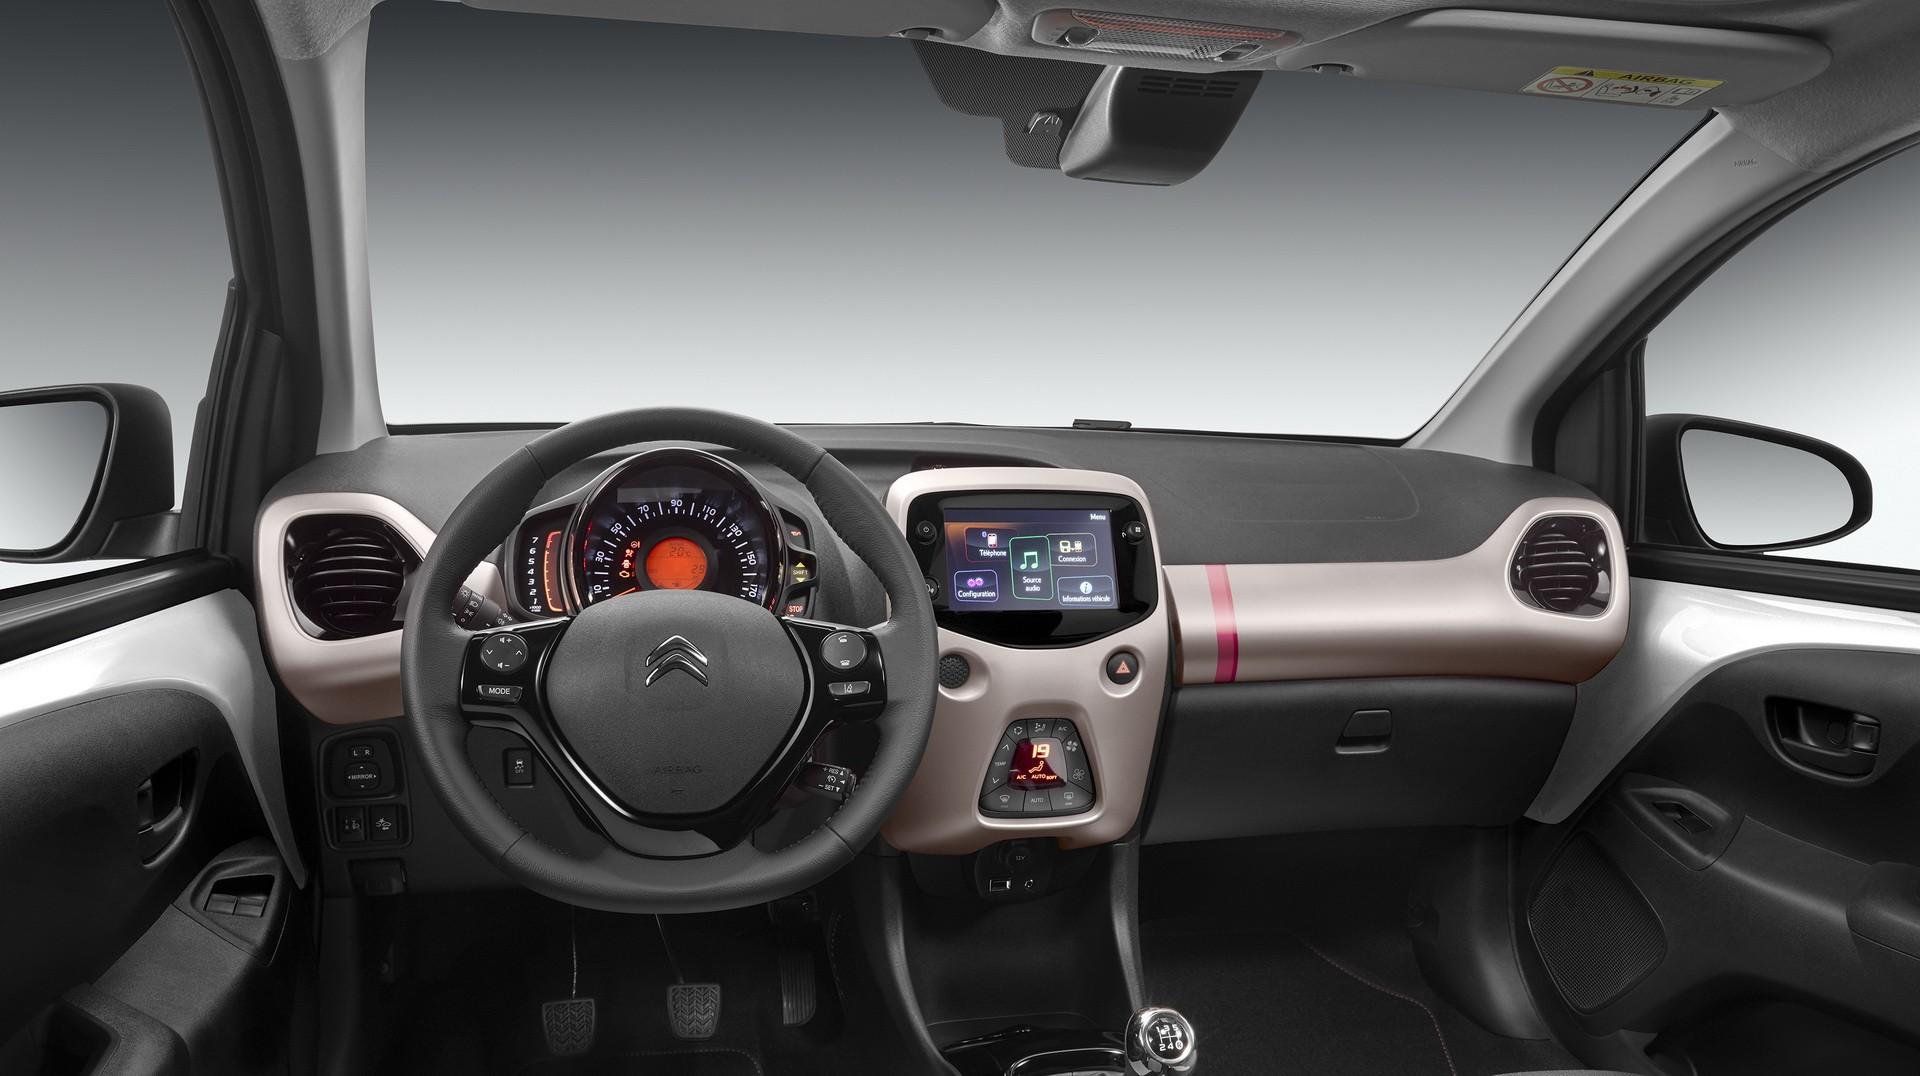 2018 citroen c1 benefits from more power further personalization options autoevolution. Black Bedroom Furniture Sets. Home Design Ideas